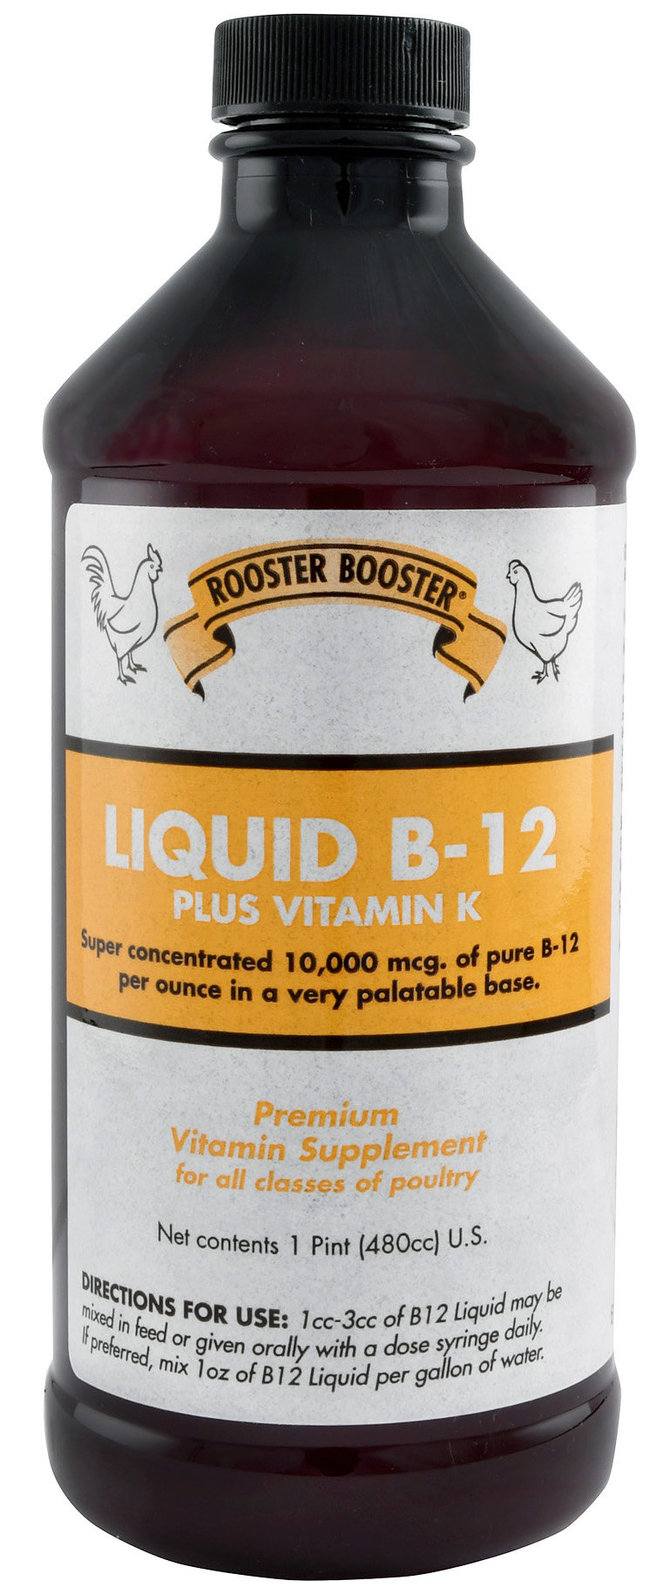 Rooster Booster Liquid B-12, 6 oz | Jeffers Pet